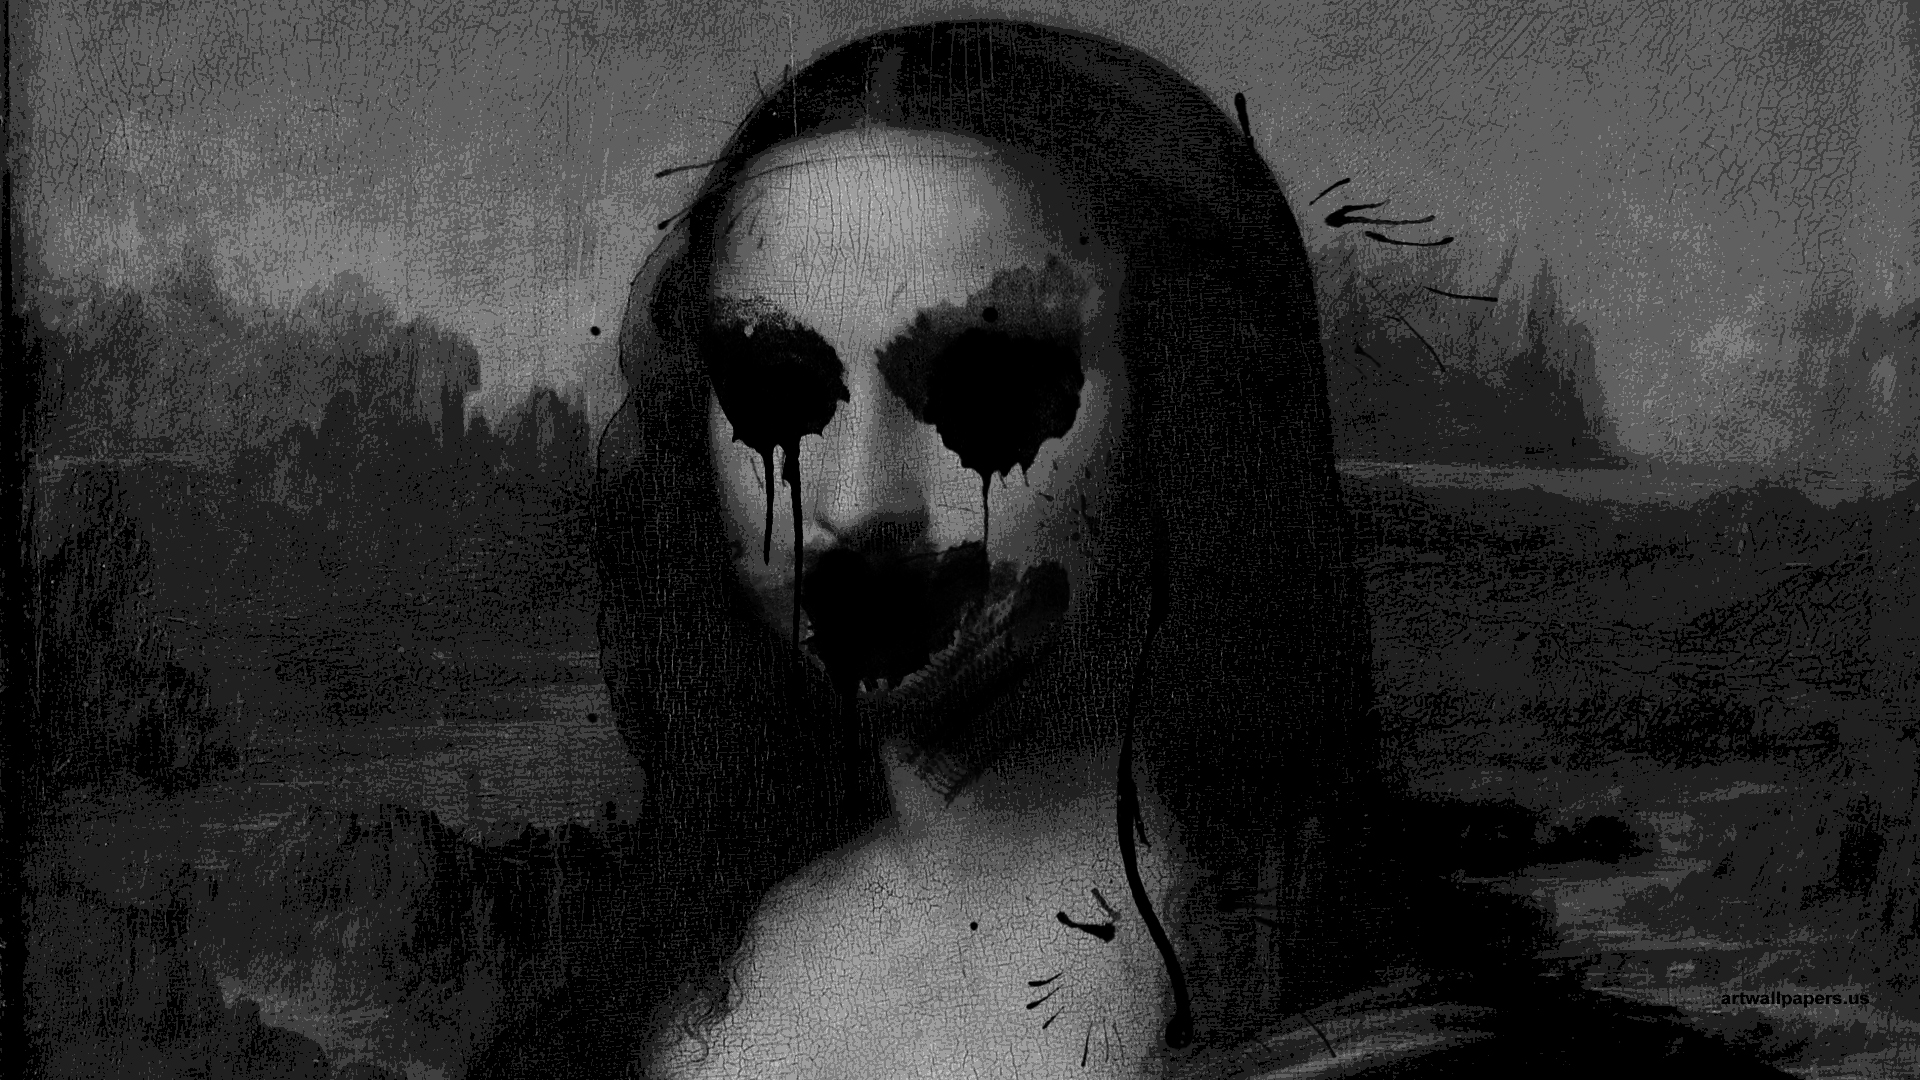 50+] Creepy Wallpapers on WallpaperSafari